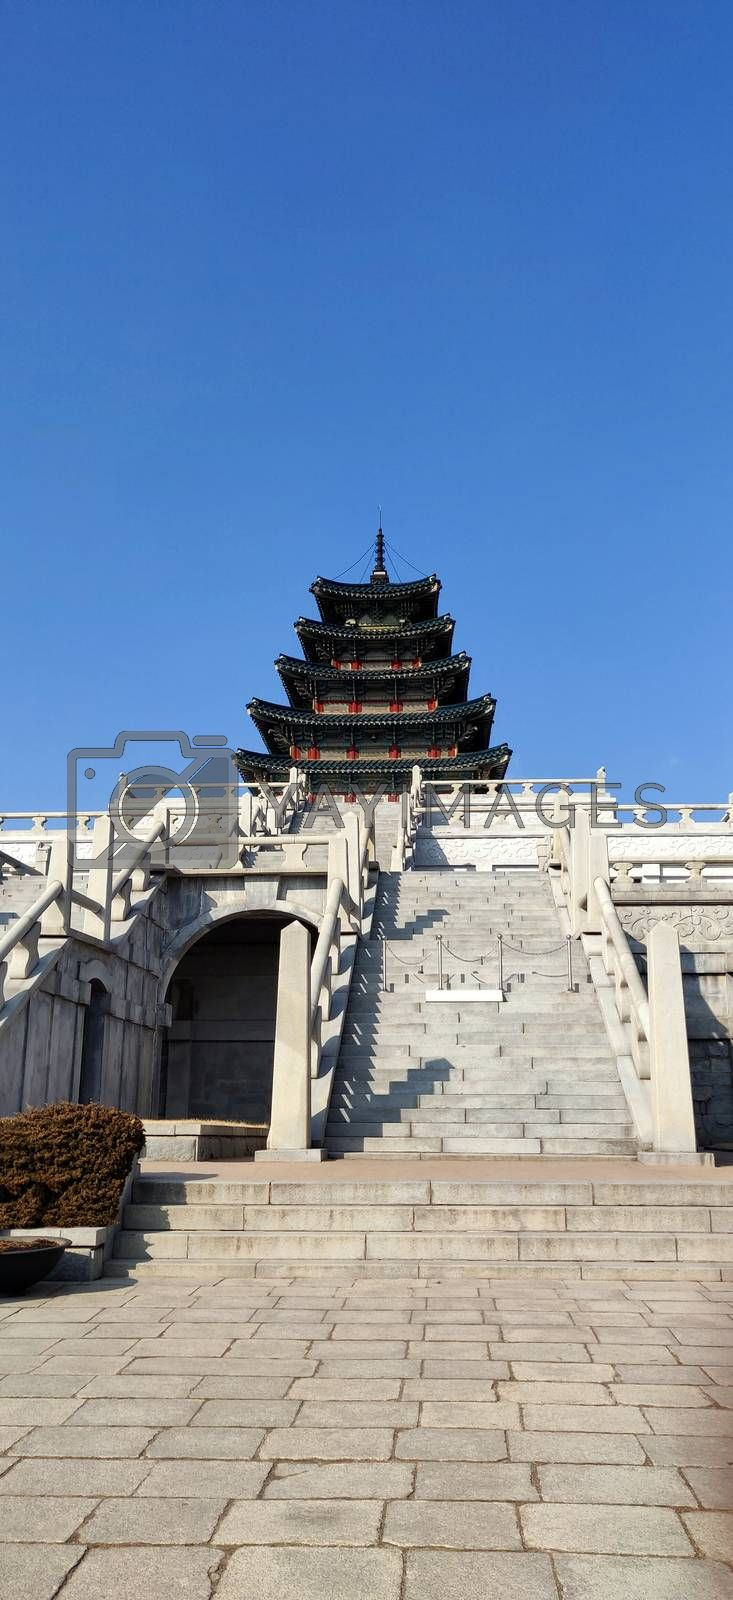 Place of worship in National Folk Museum of Korea in Seoul, South Korea